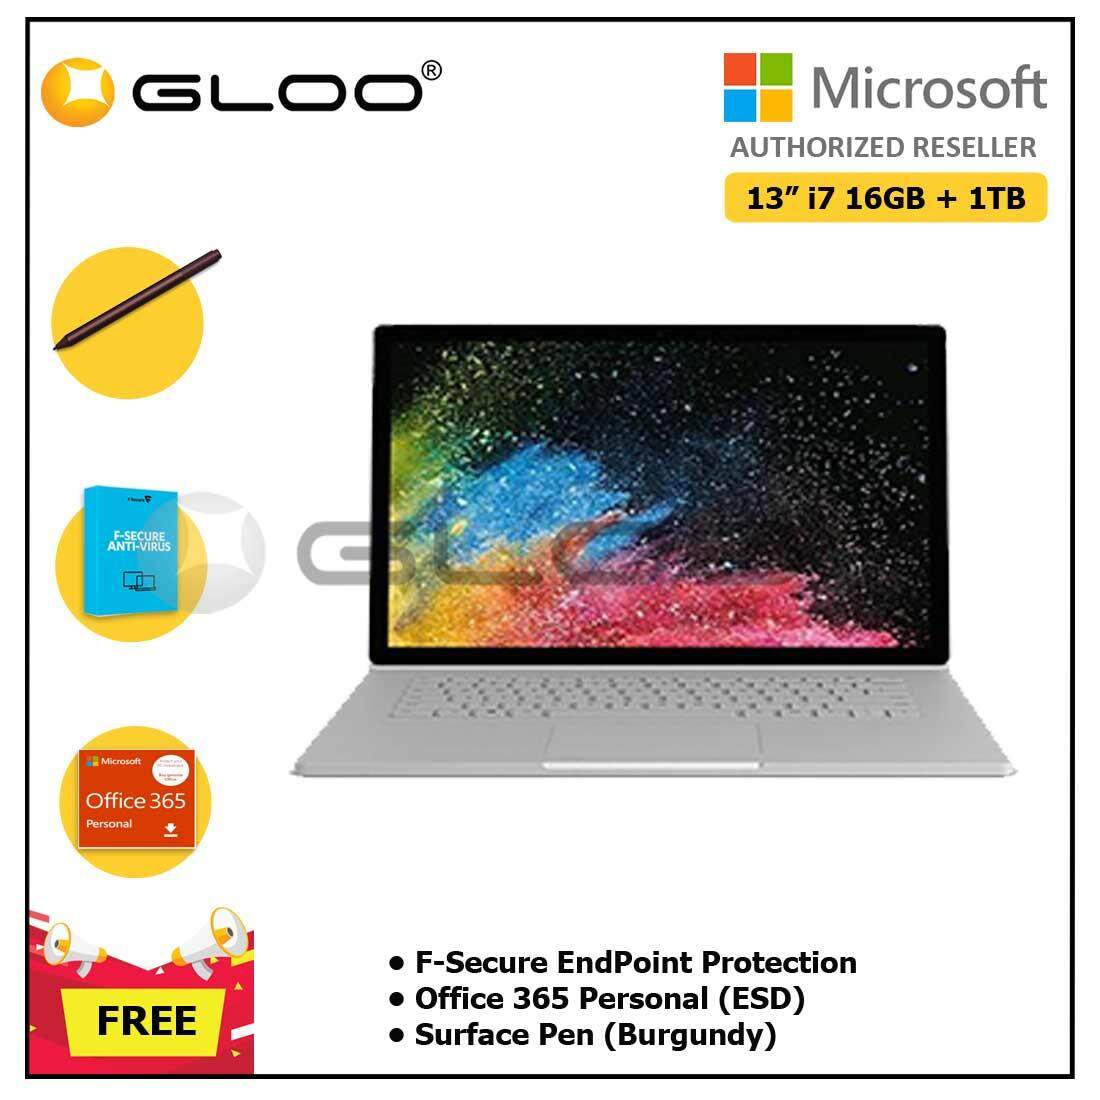 """Surface Book 2 13"""" Core i7/16GB RAM - 1TB + F-Secure EndPoint Protection + Office 365 Personal ESD + Pen Burgundy"""